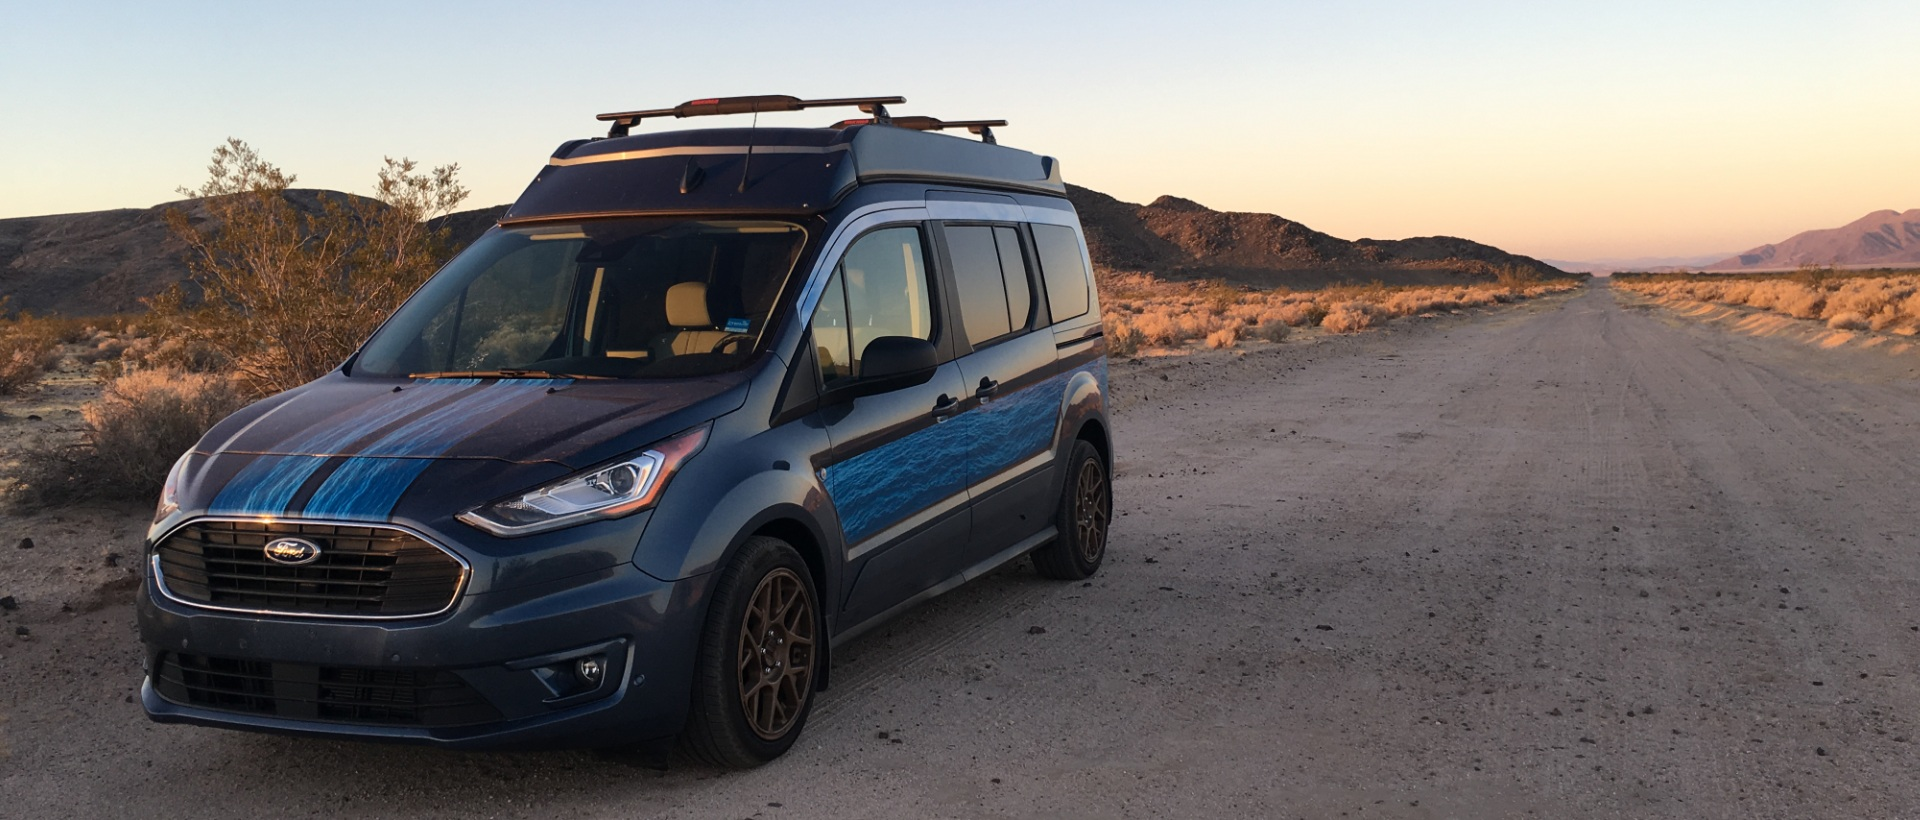 /campers/ford-camper-conversions.html